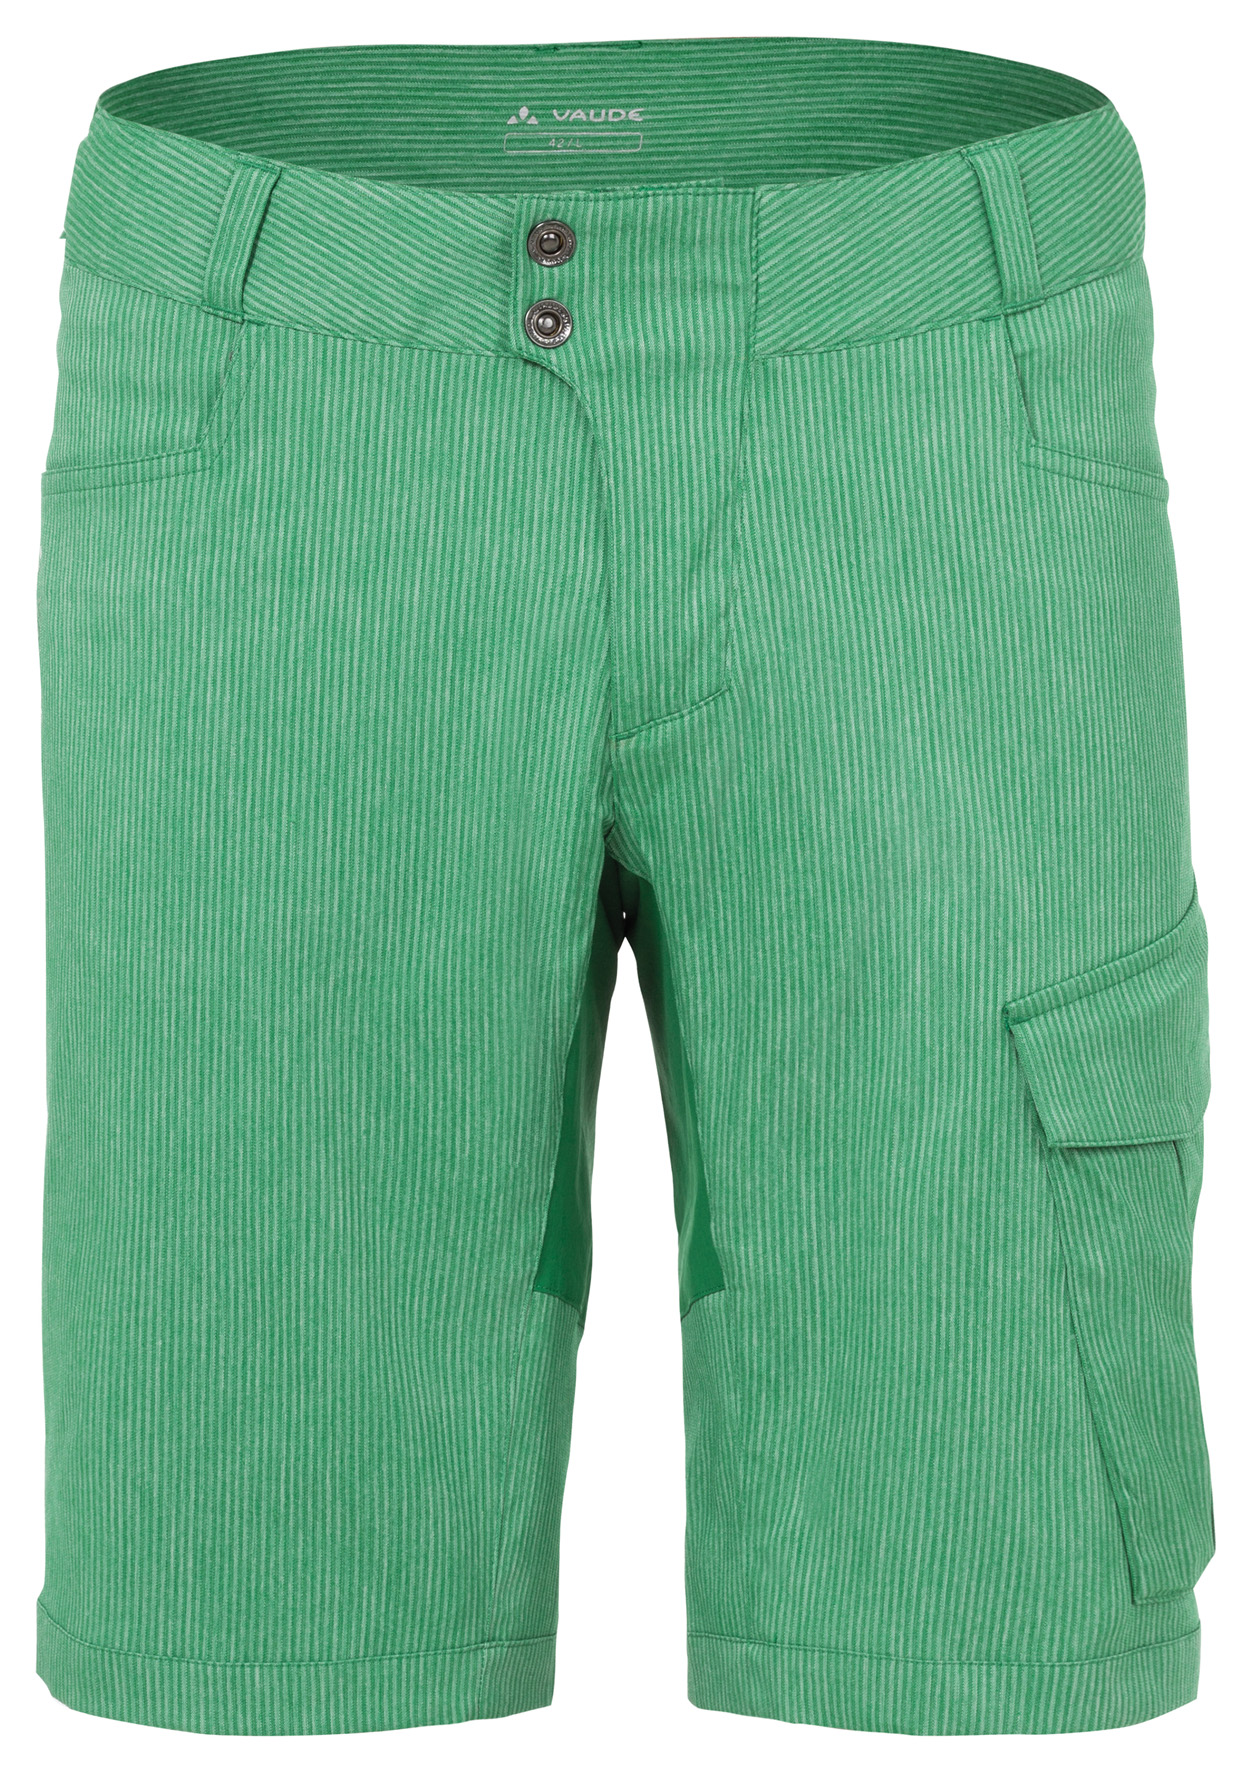 Men´s Tremalzo Shorts yucca green Größe L - schneider-sports